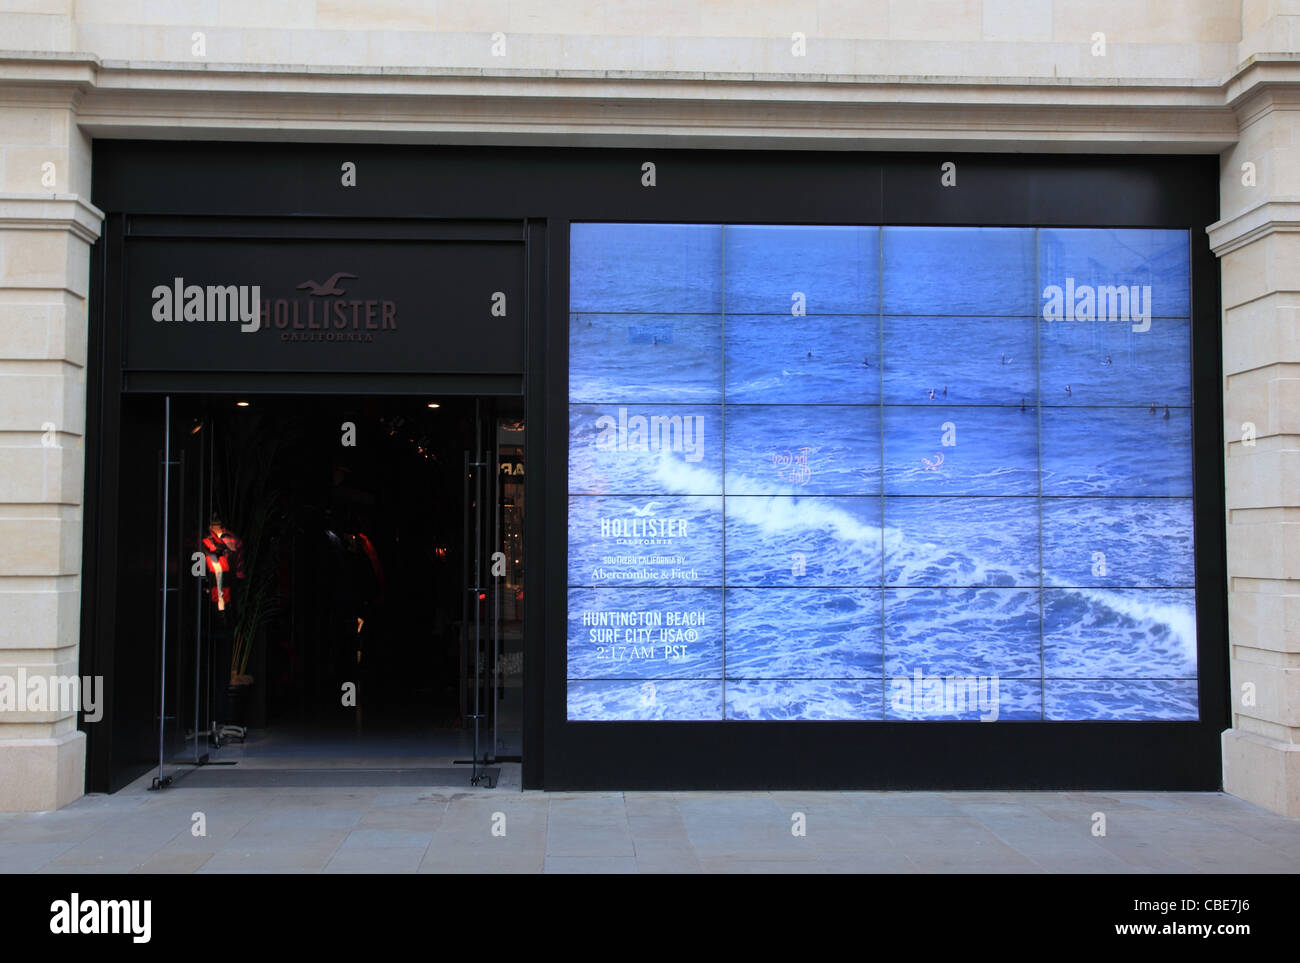 Hollister store southgate bath england stock photo for Hollister live chat